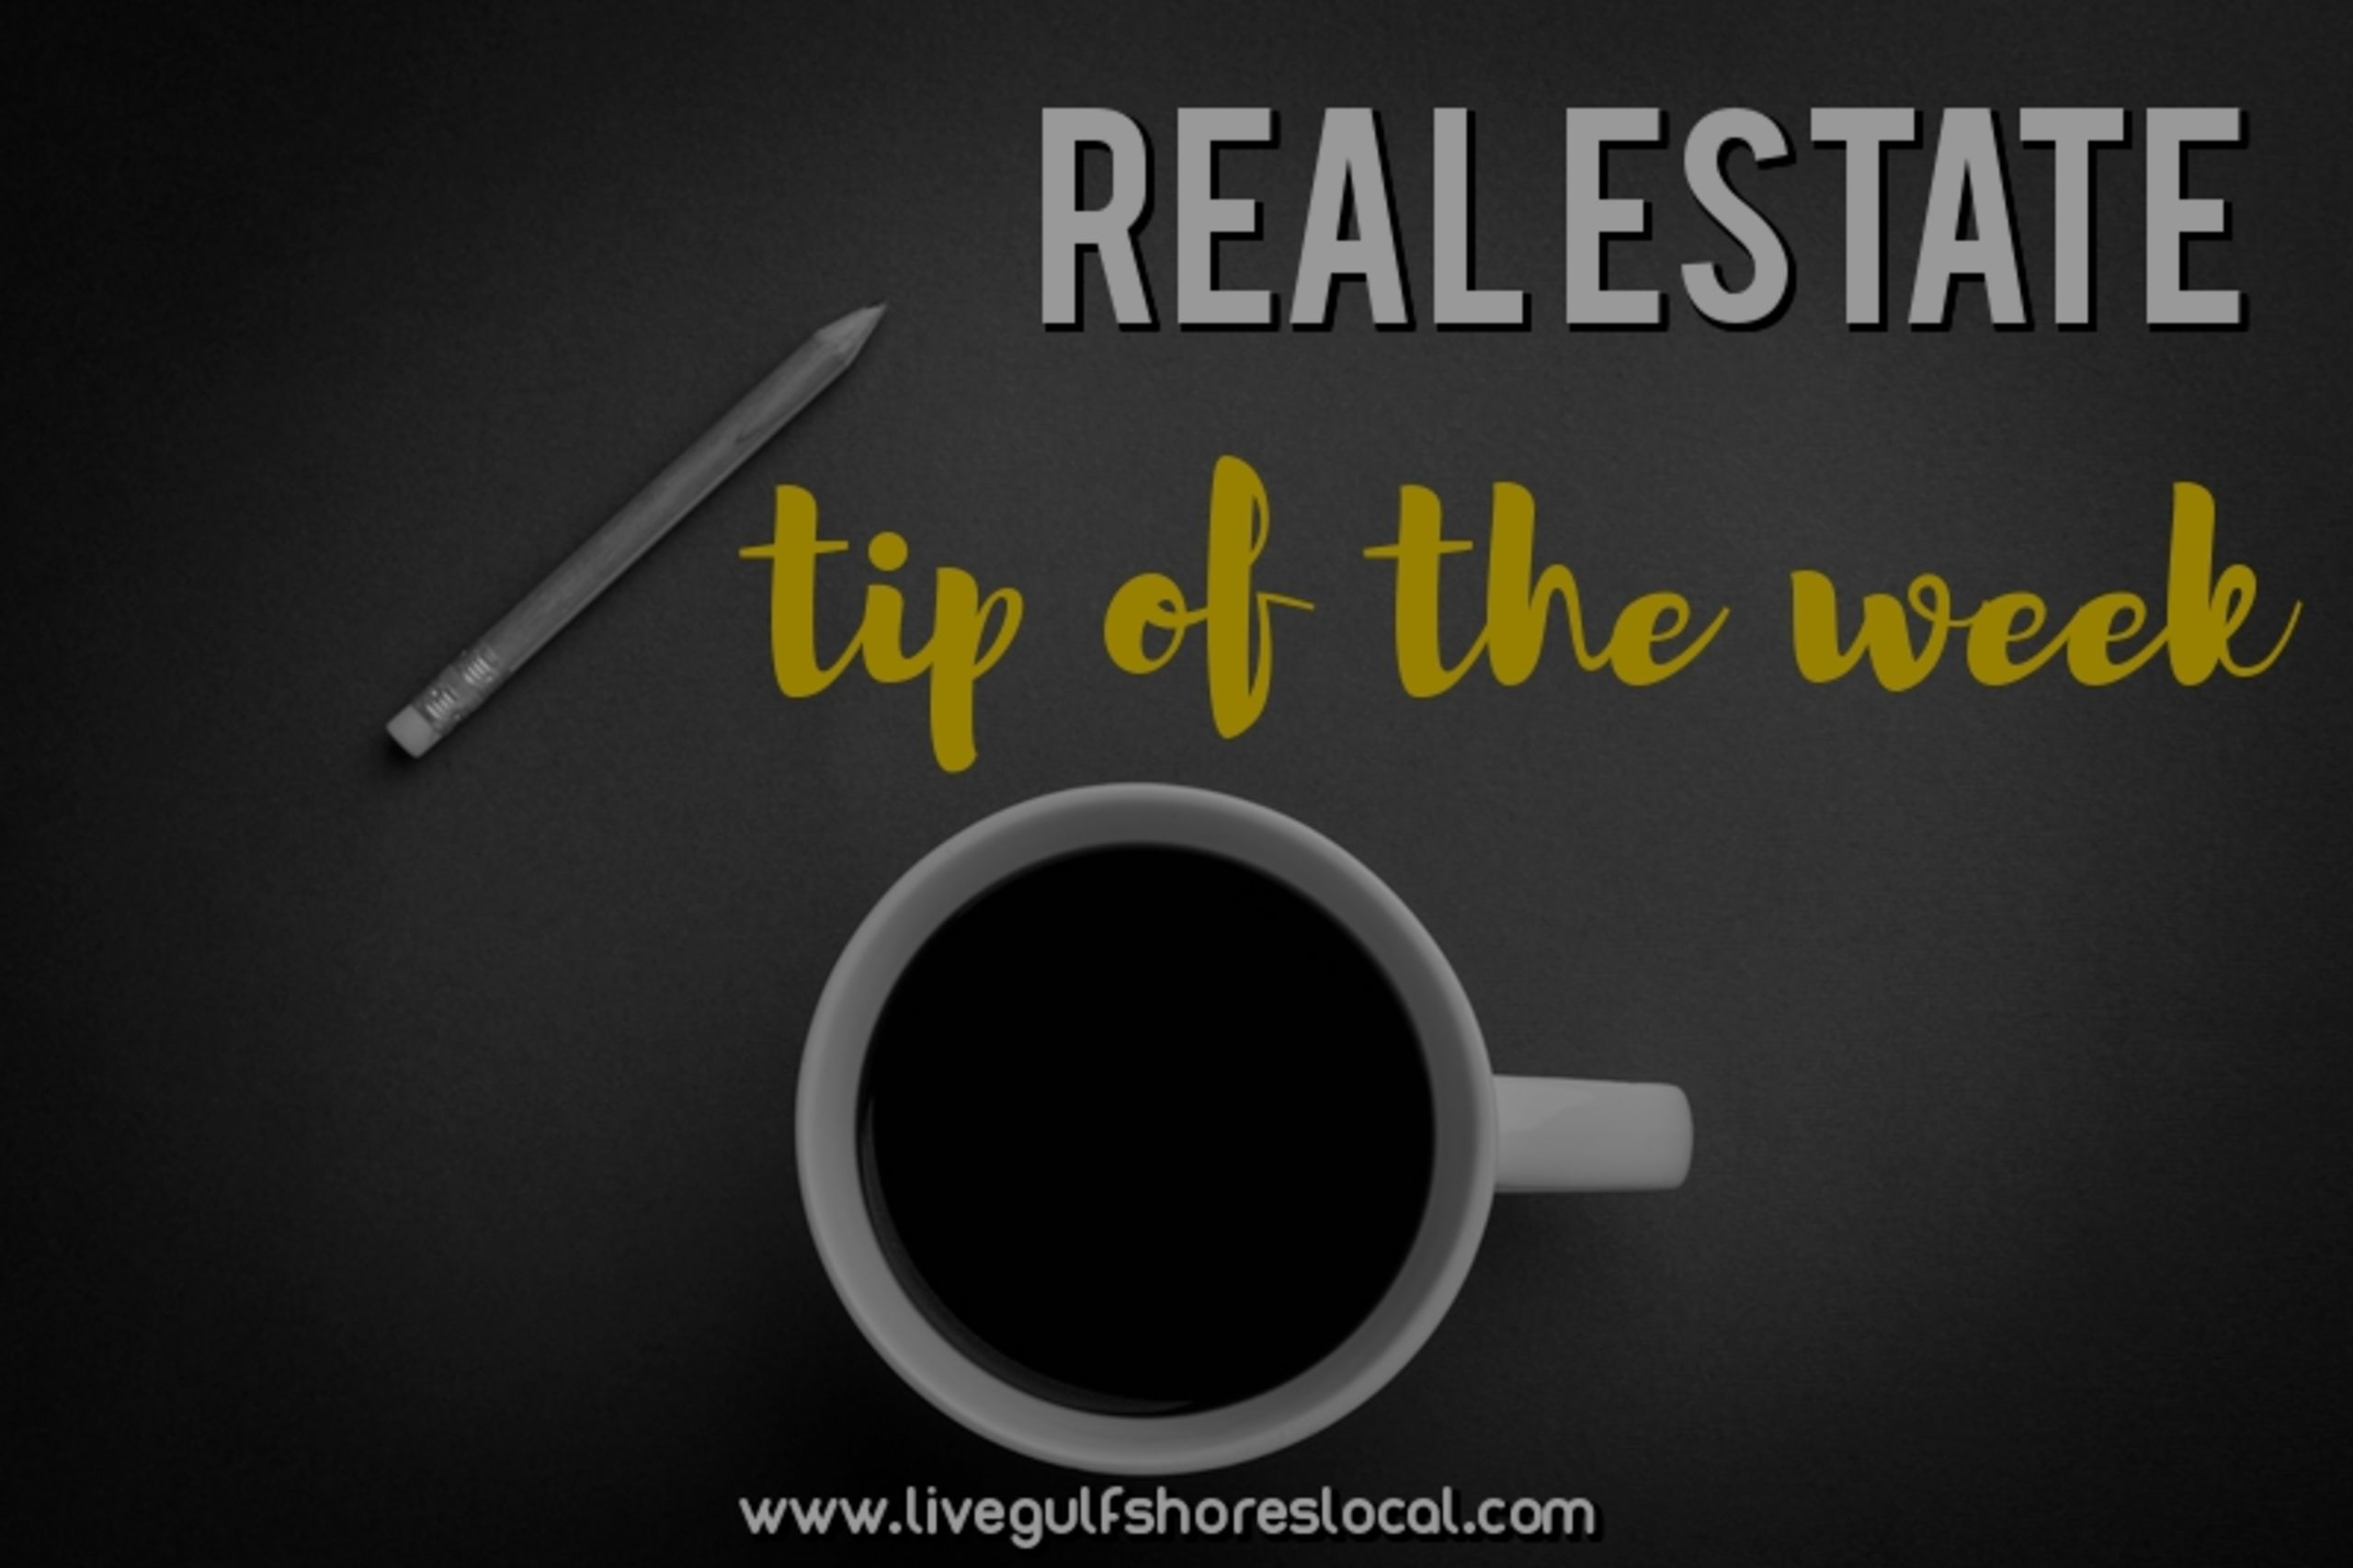 Real Estate Tip of the Week – 12/4/17